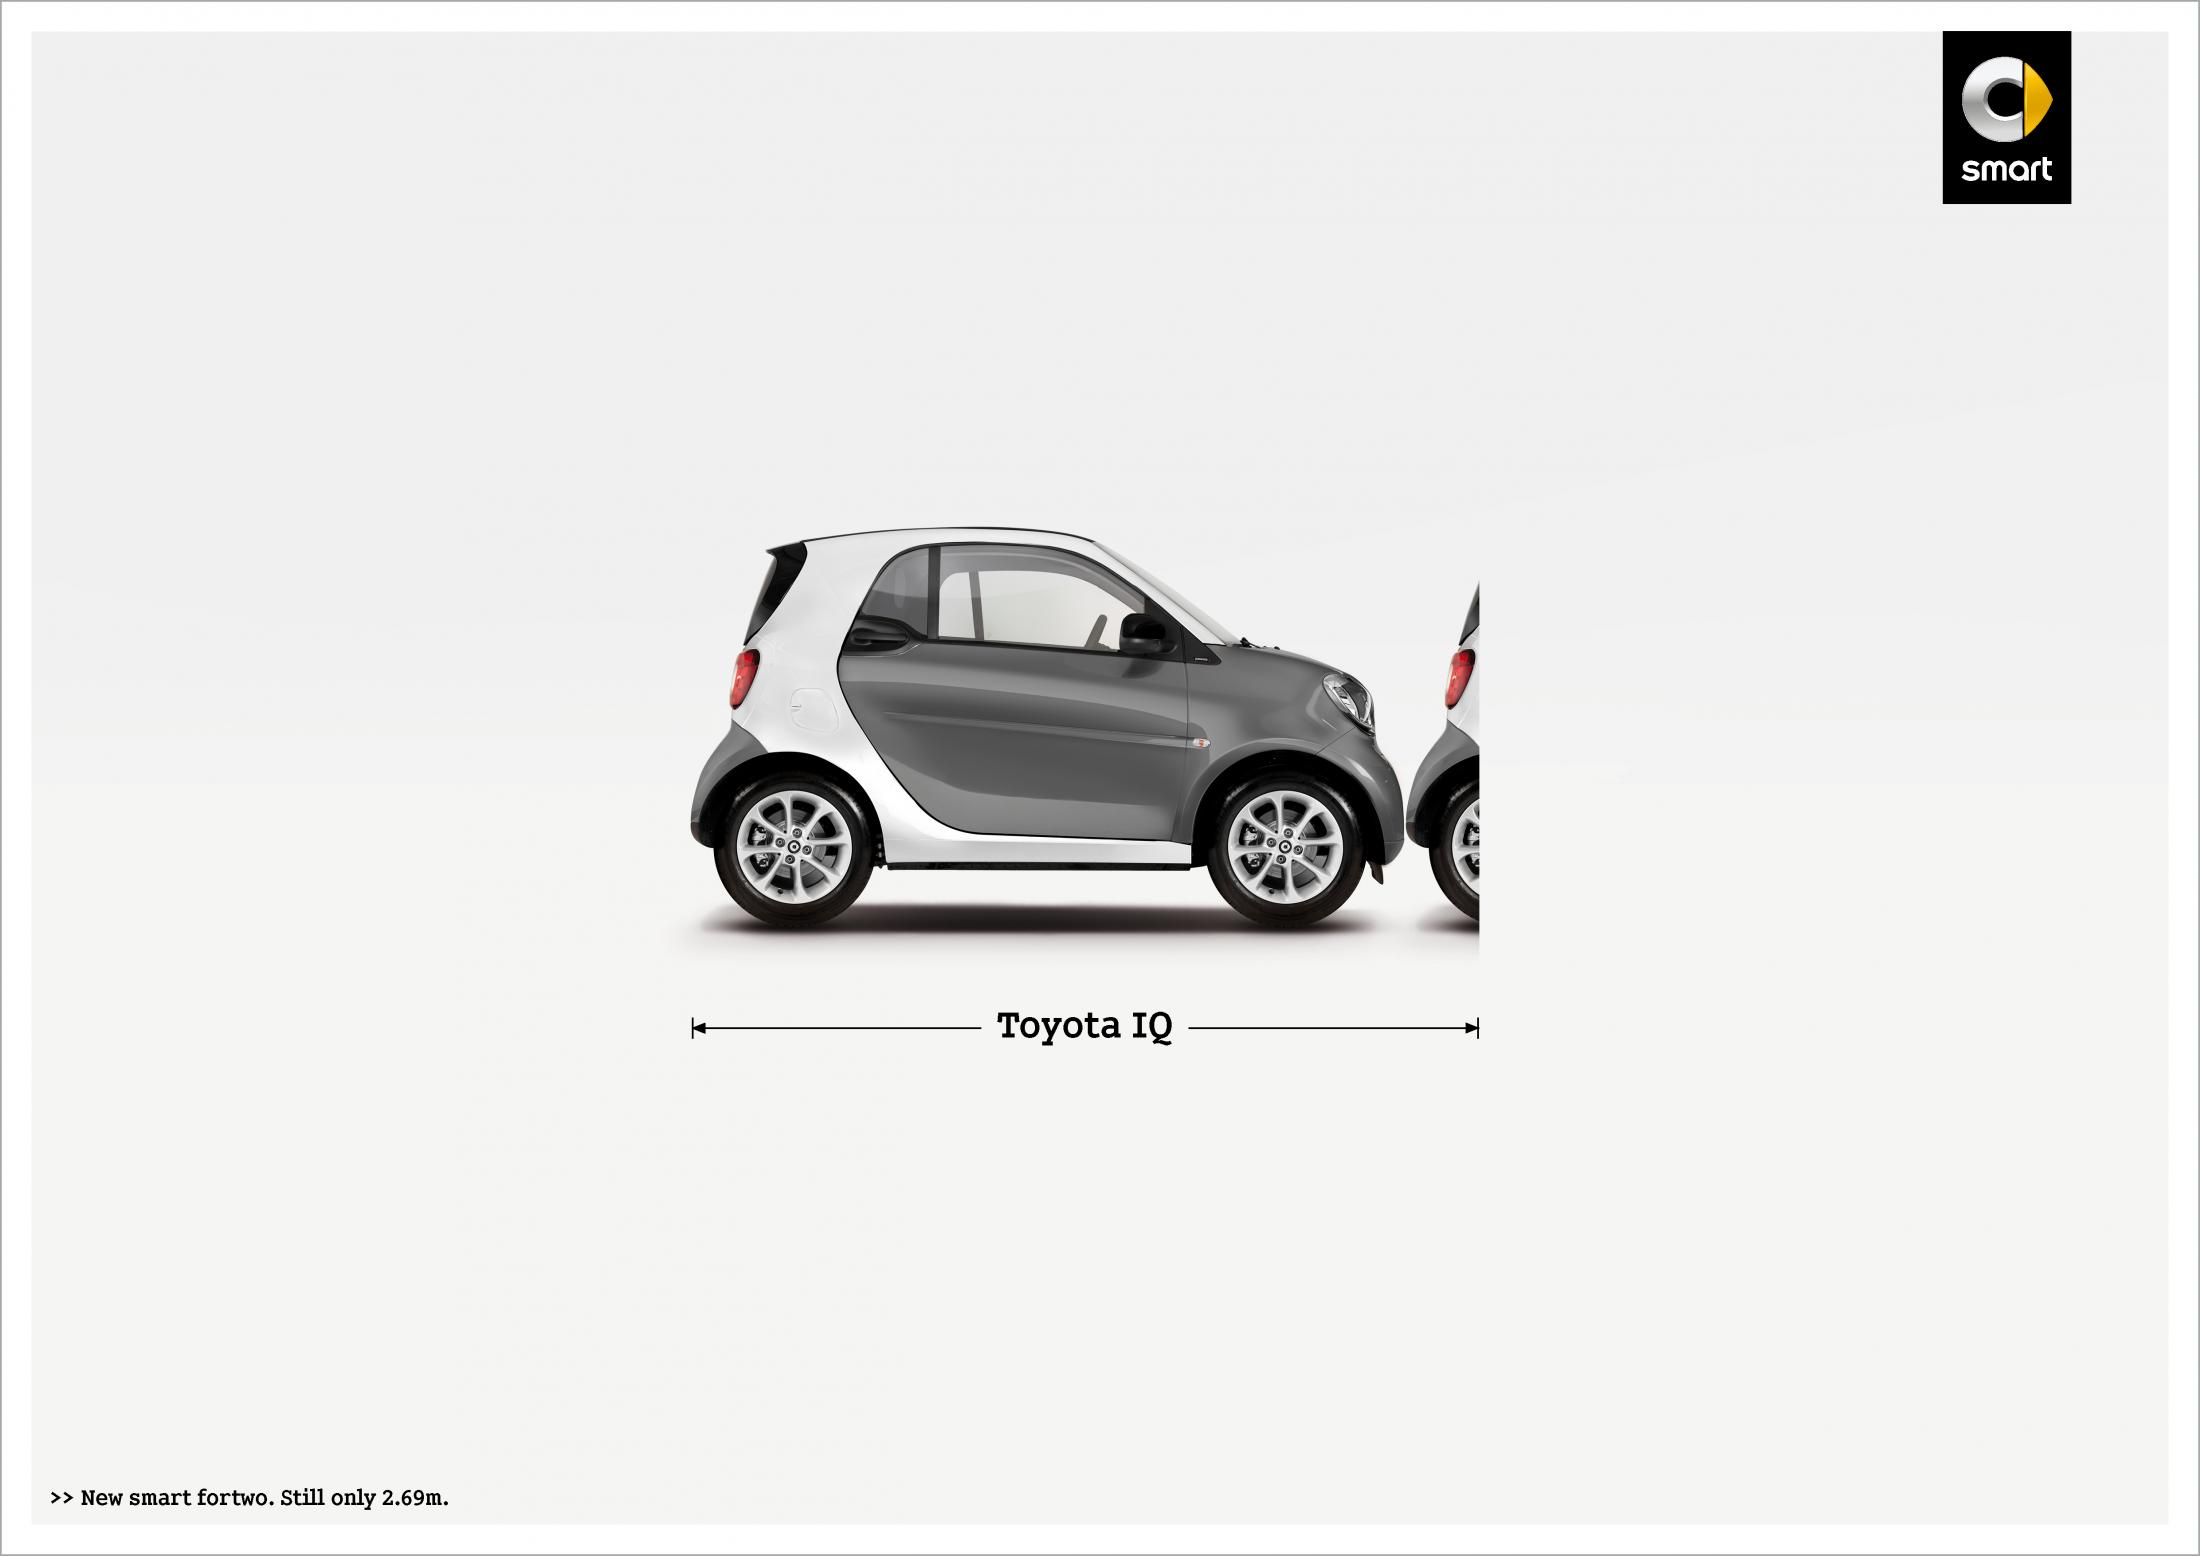 Image Media for COMPETITORS - Toyota IQ